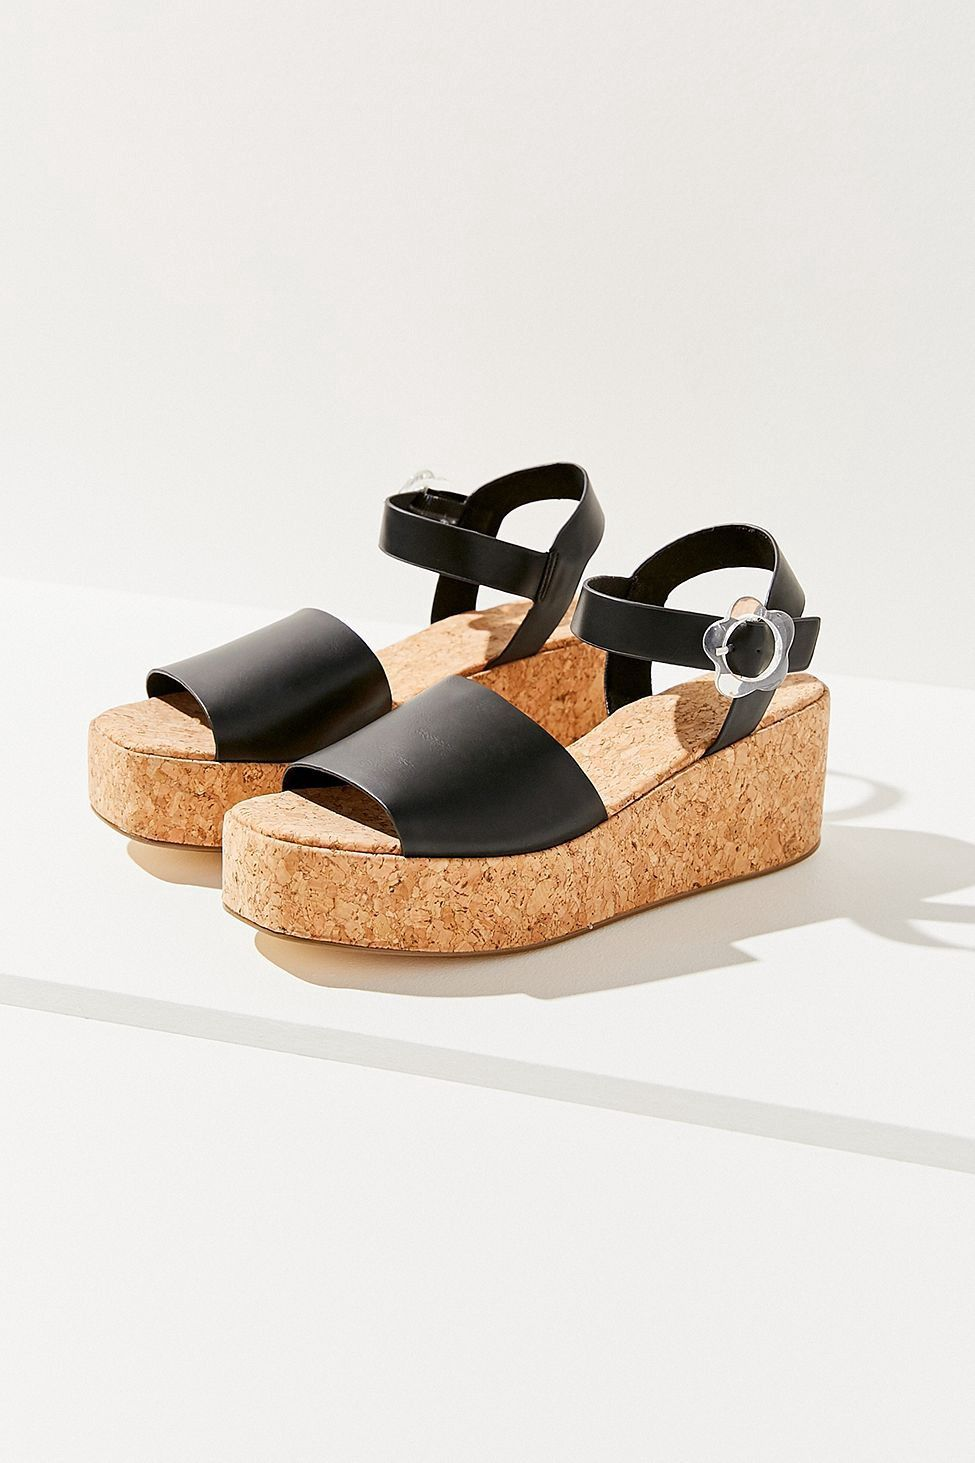 d479086f22f Urban Outfitters Layla Cork Flatform Sandal - 10 | Products ...